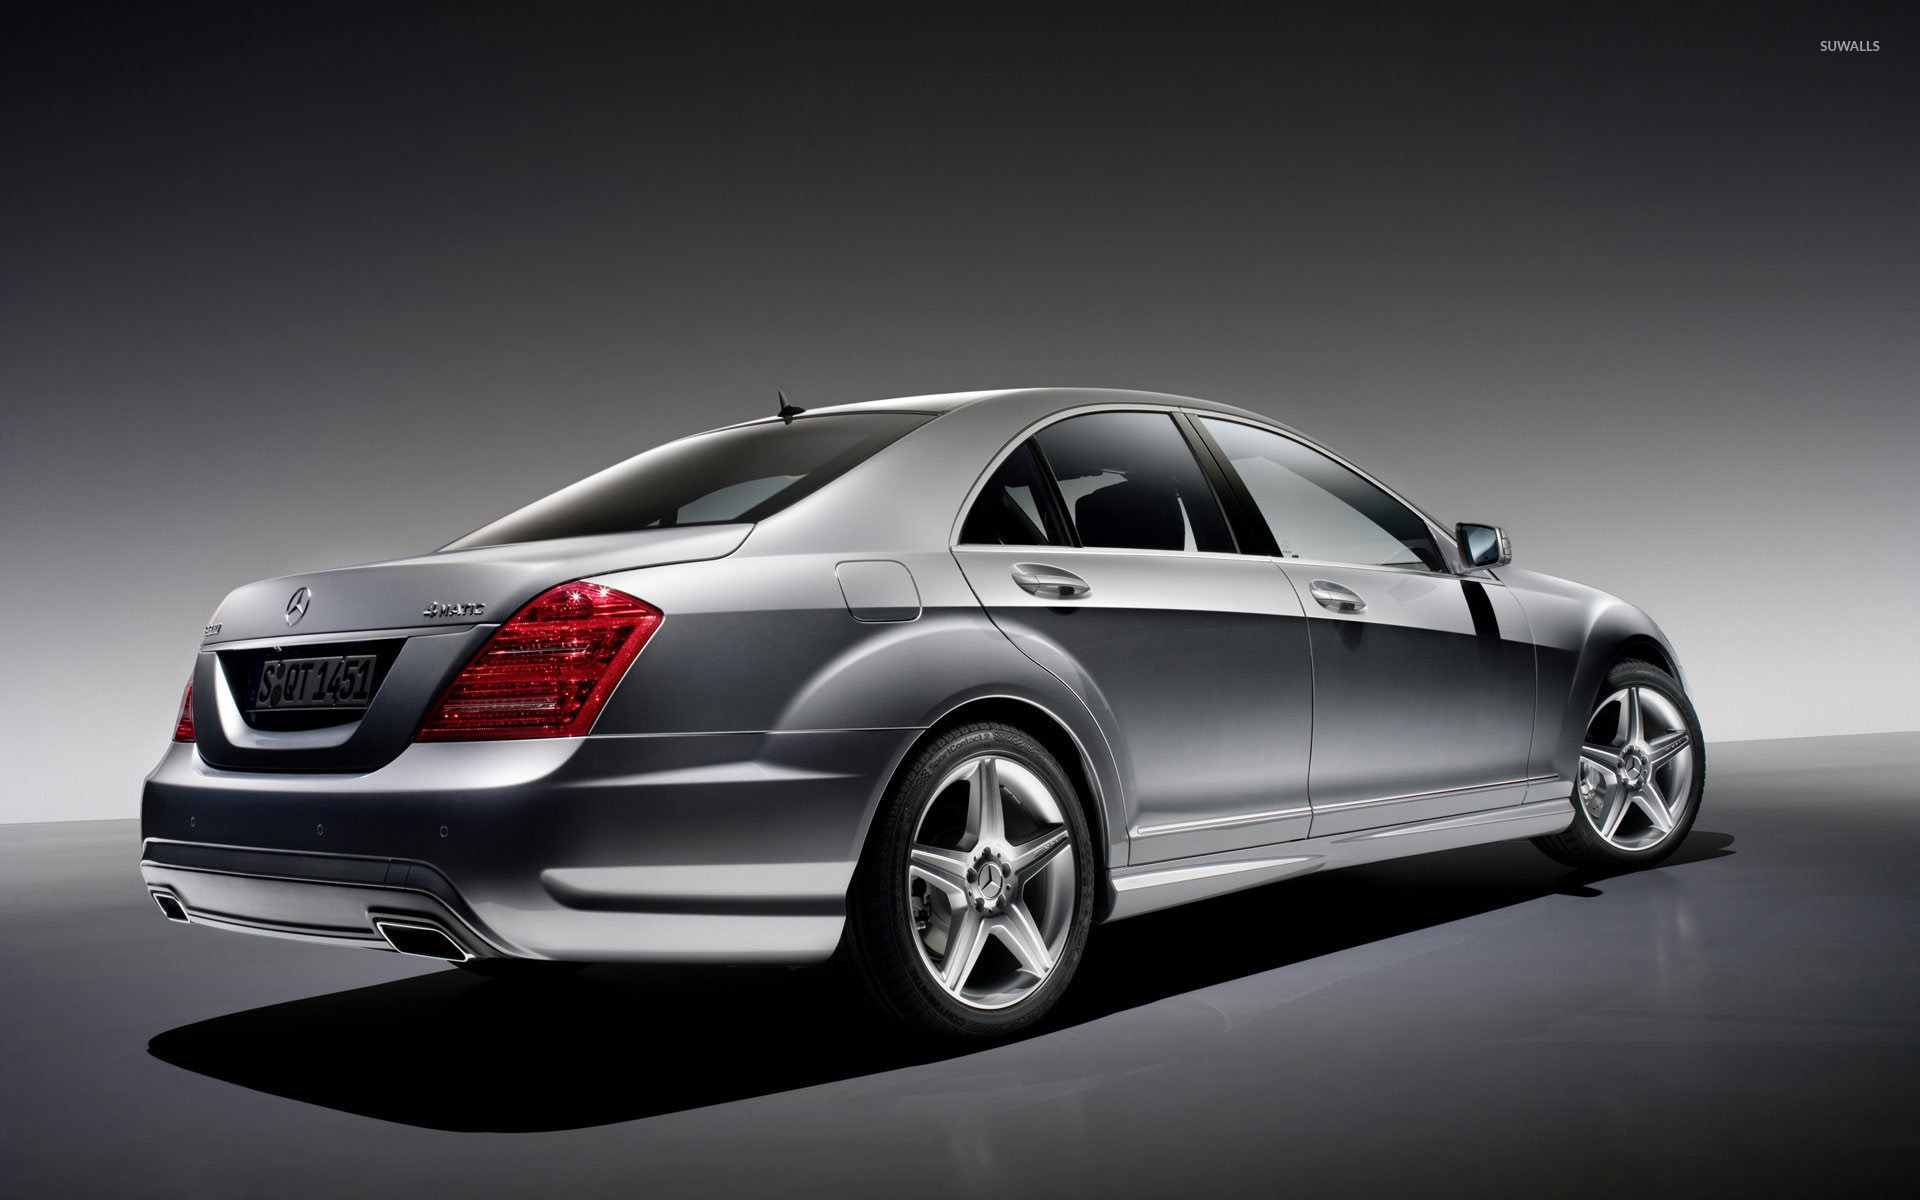 Silver mercedes benz s class 4matic back side view for Mercedes benz s class 4matic